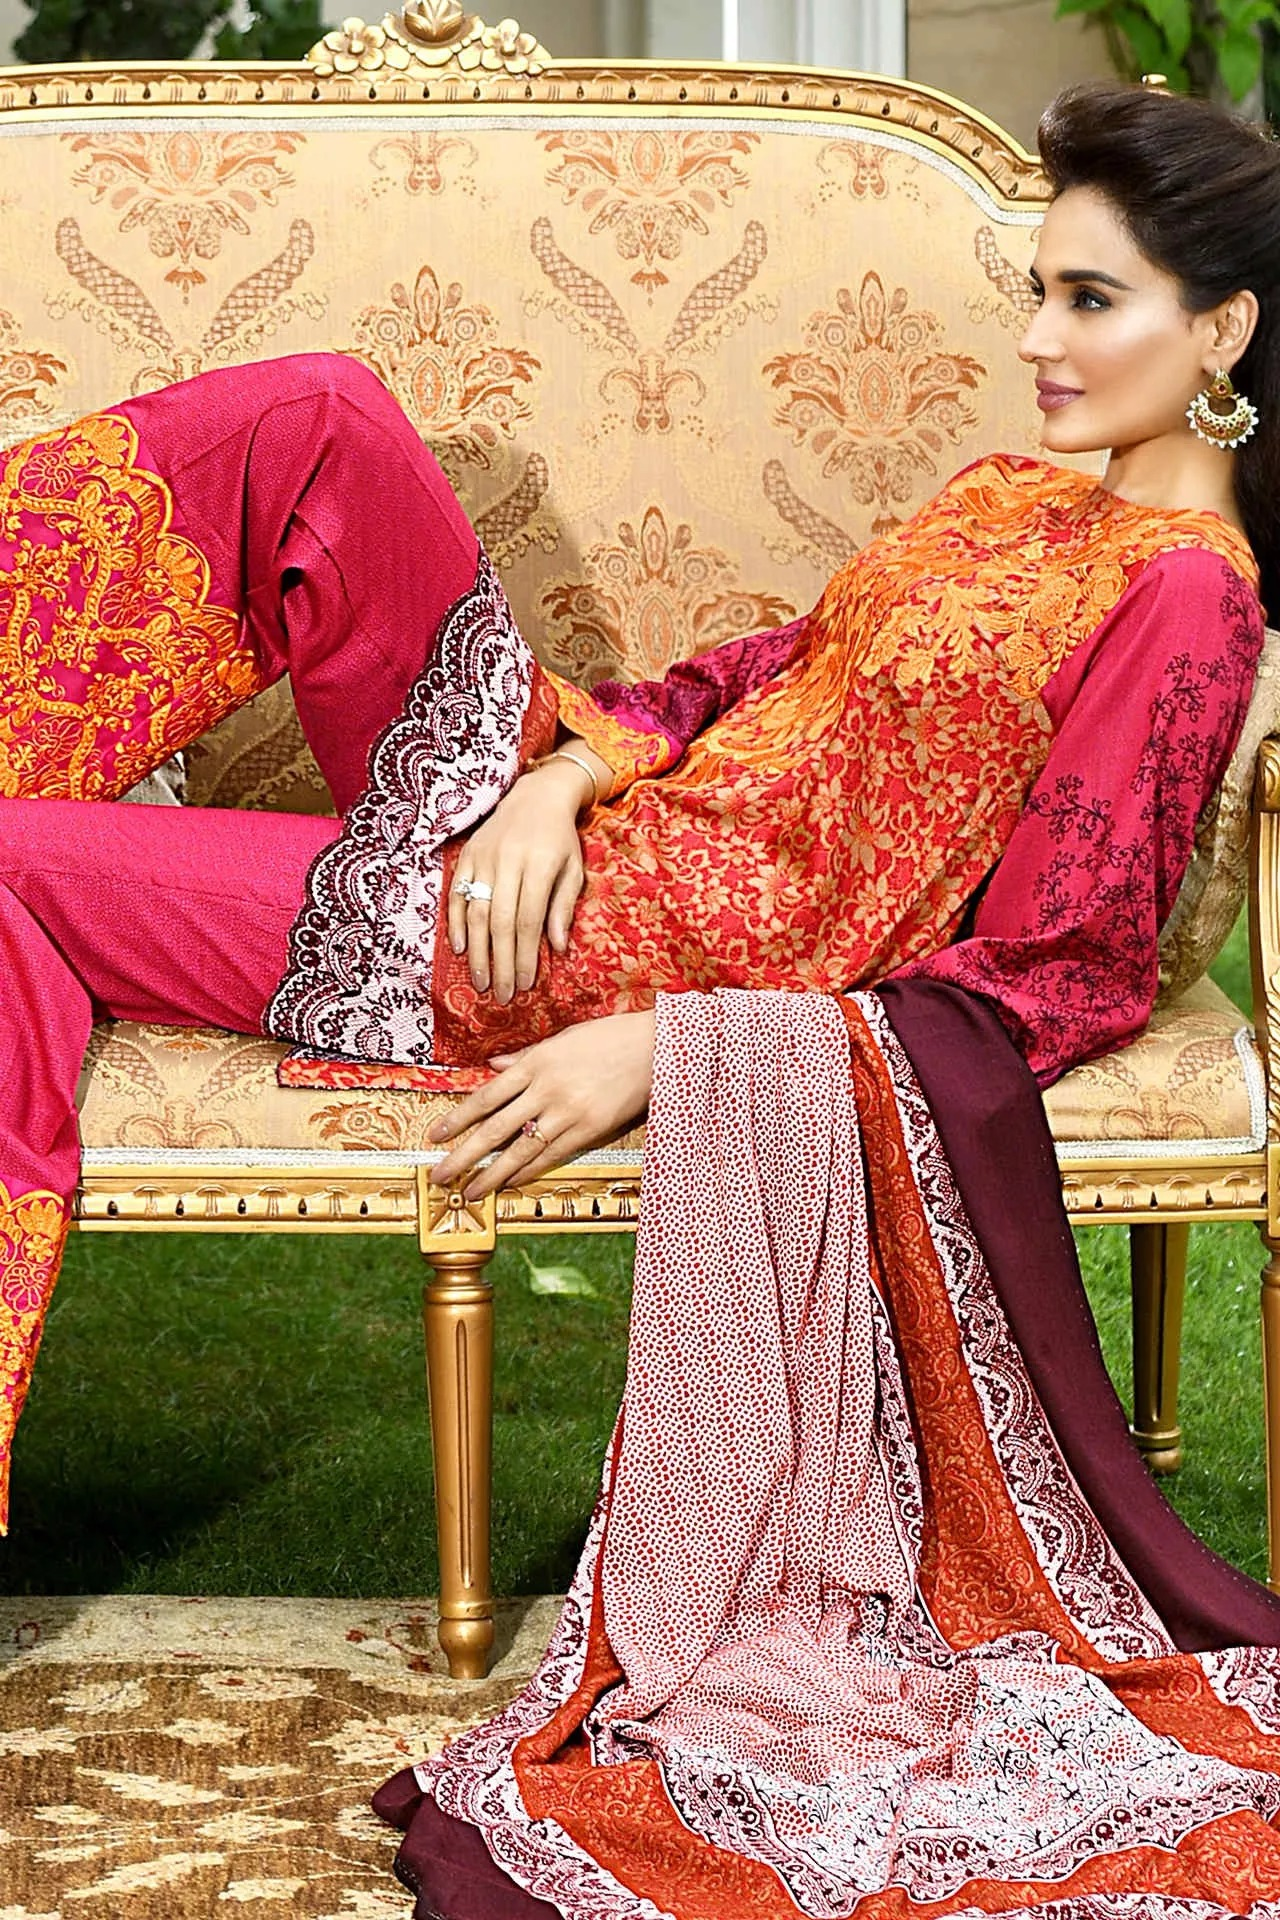 house-of-ittehad-royal-embroidered-winter-dresses-2016-17-1